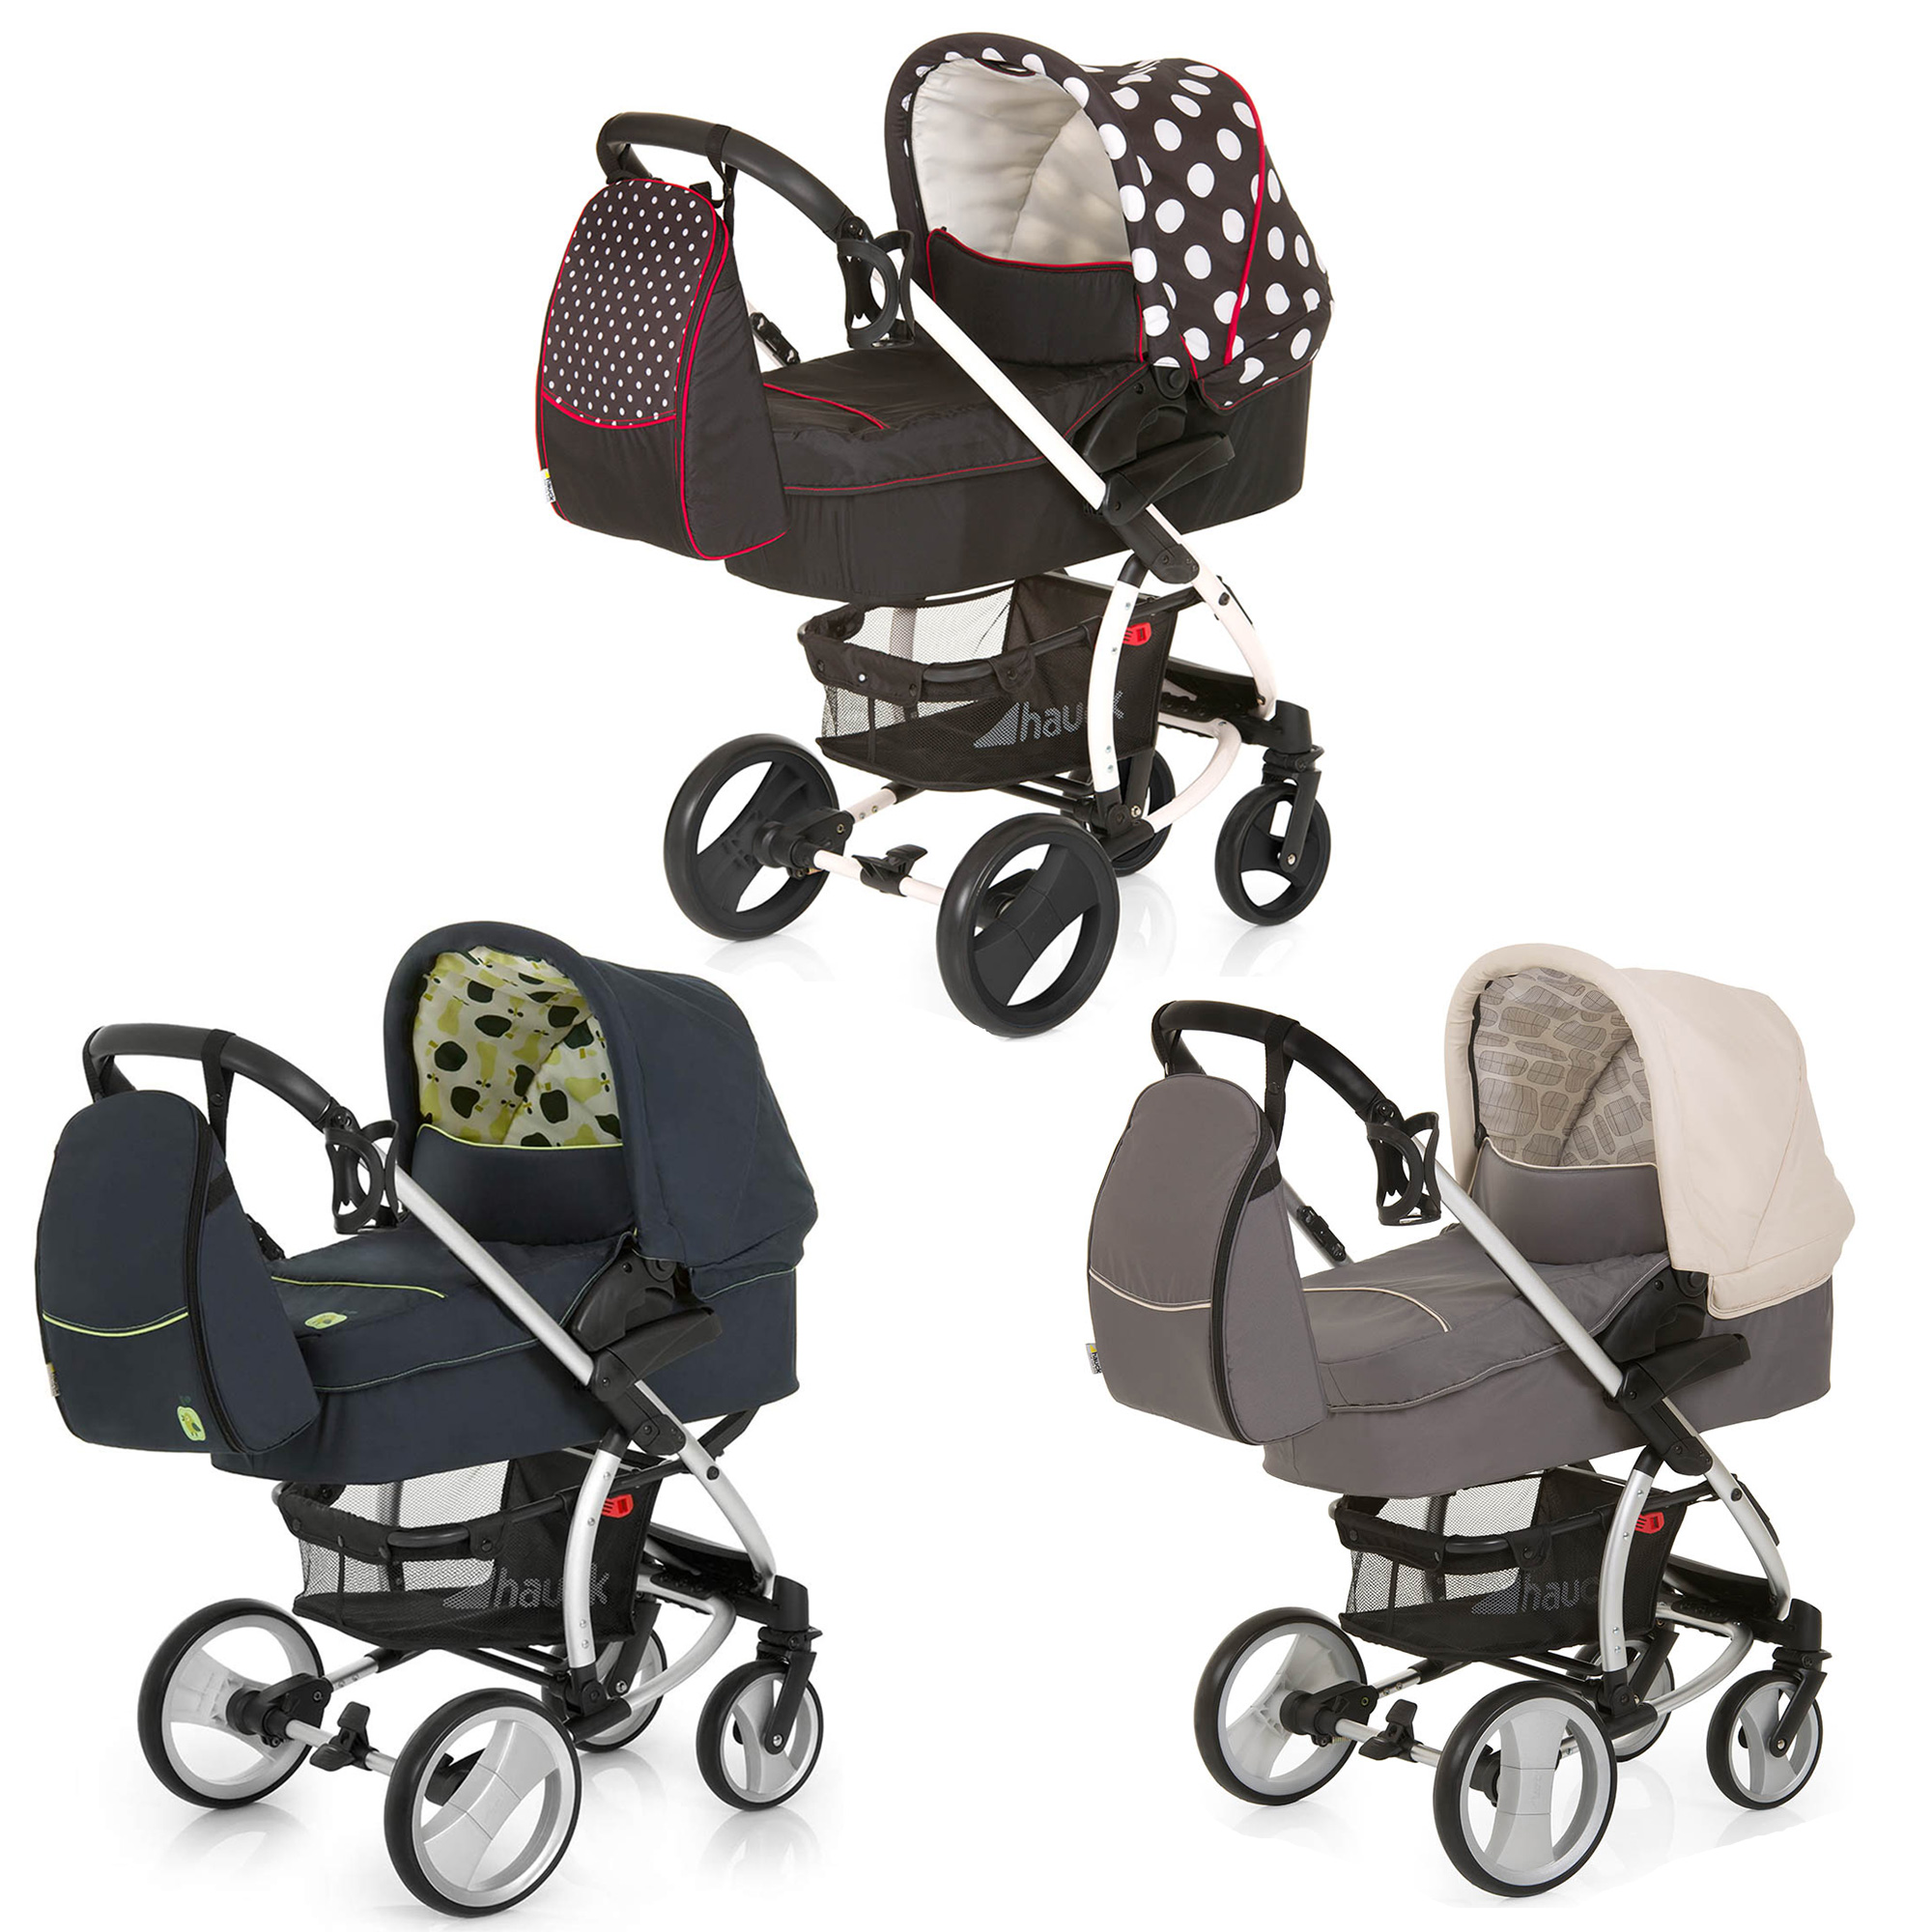 Travel System Car Seat Weight Limit